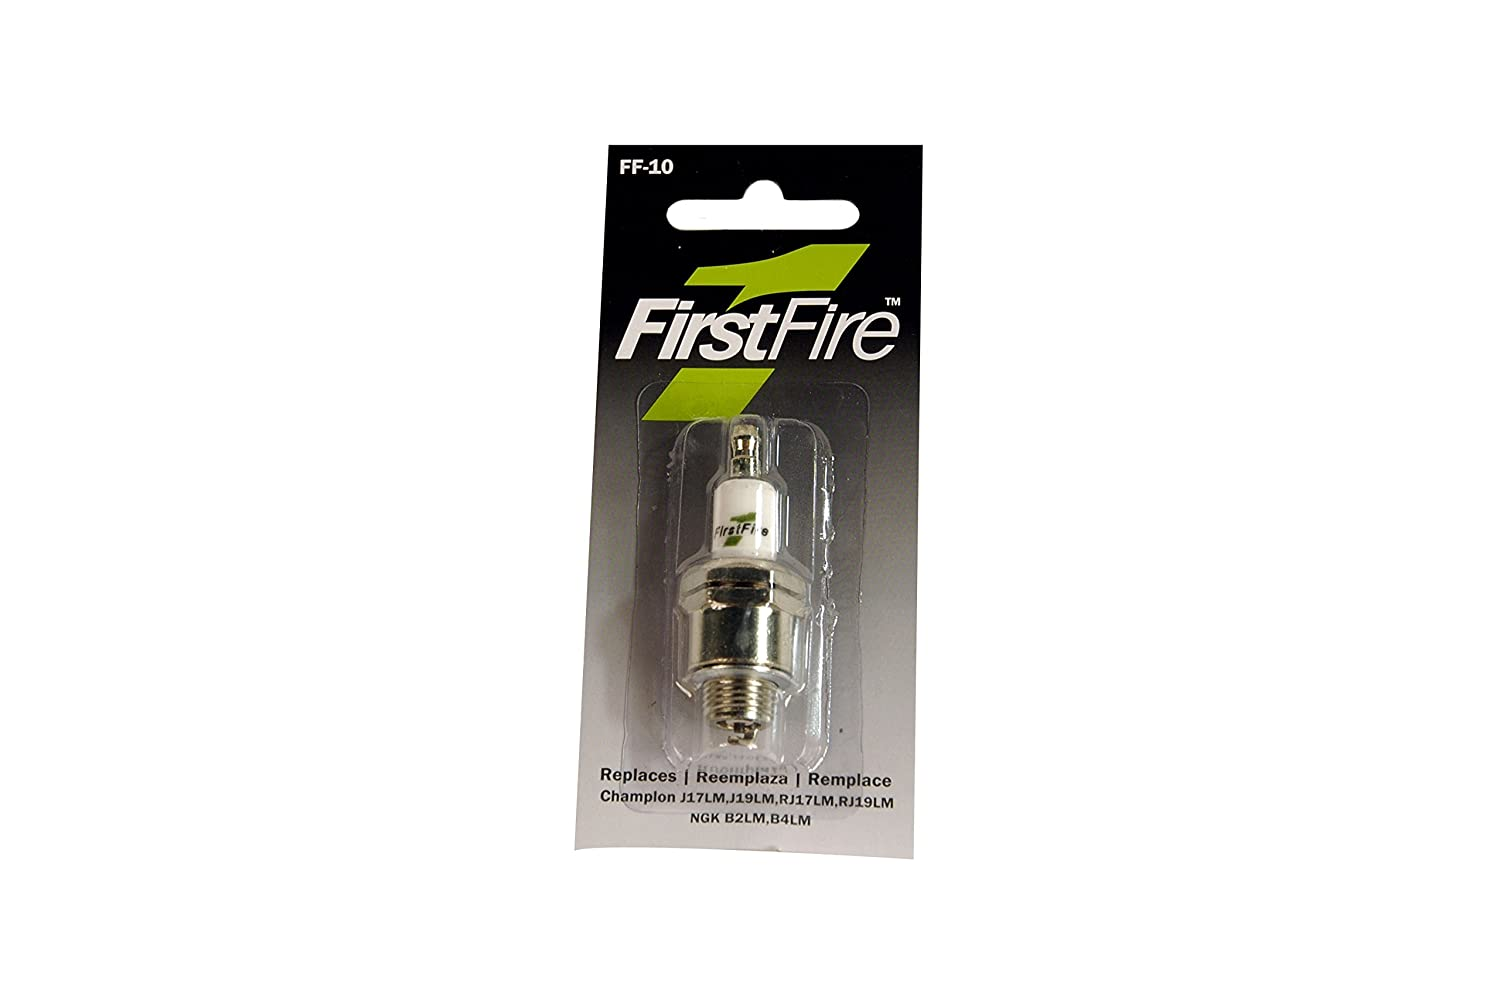 ARNOLD First Fire FF-10 Replacement Spark Plug E3 Spark Plugs